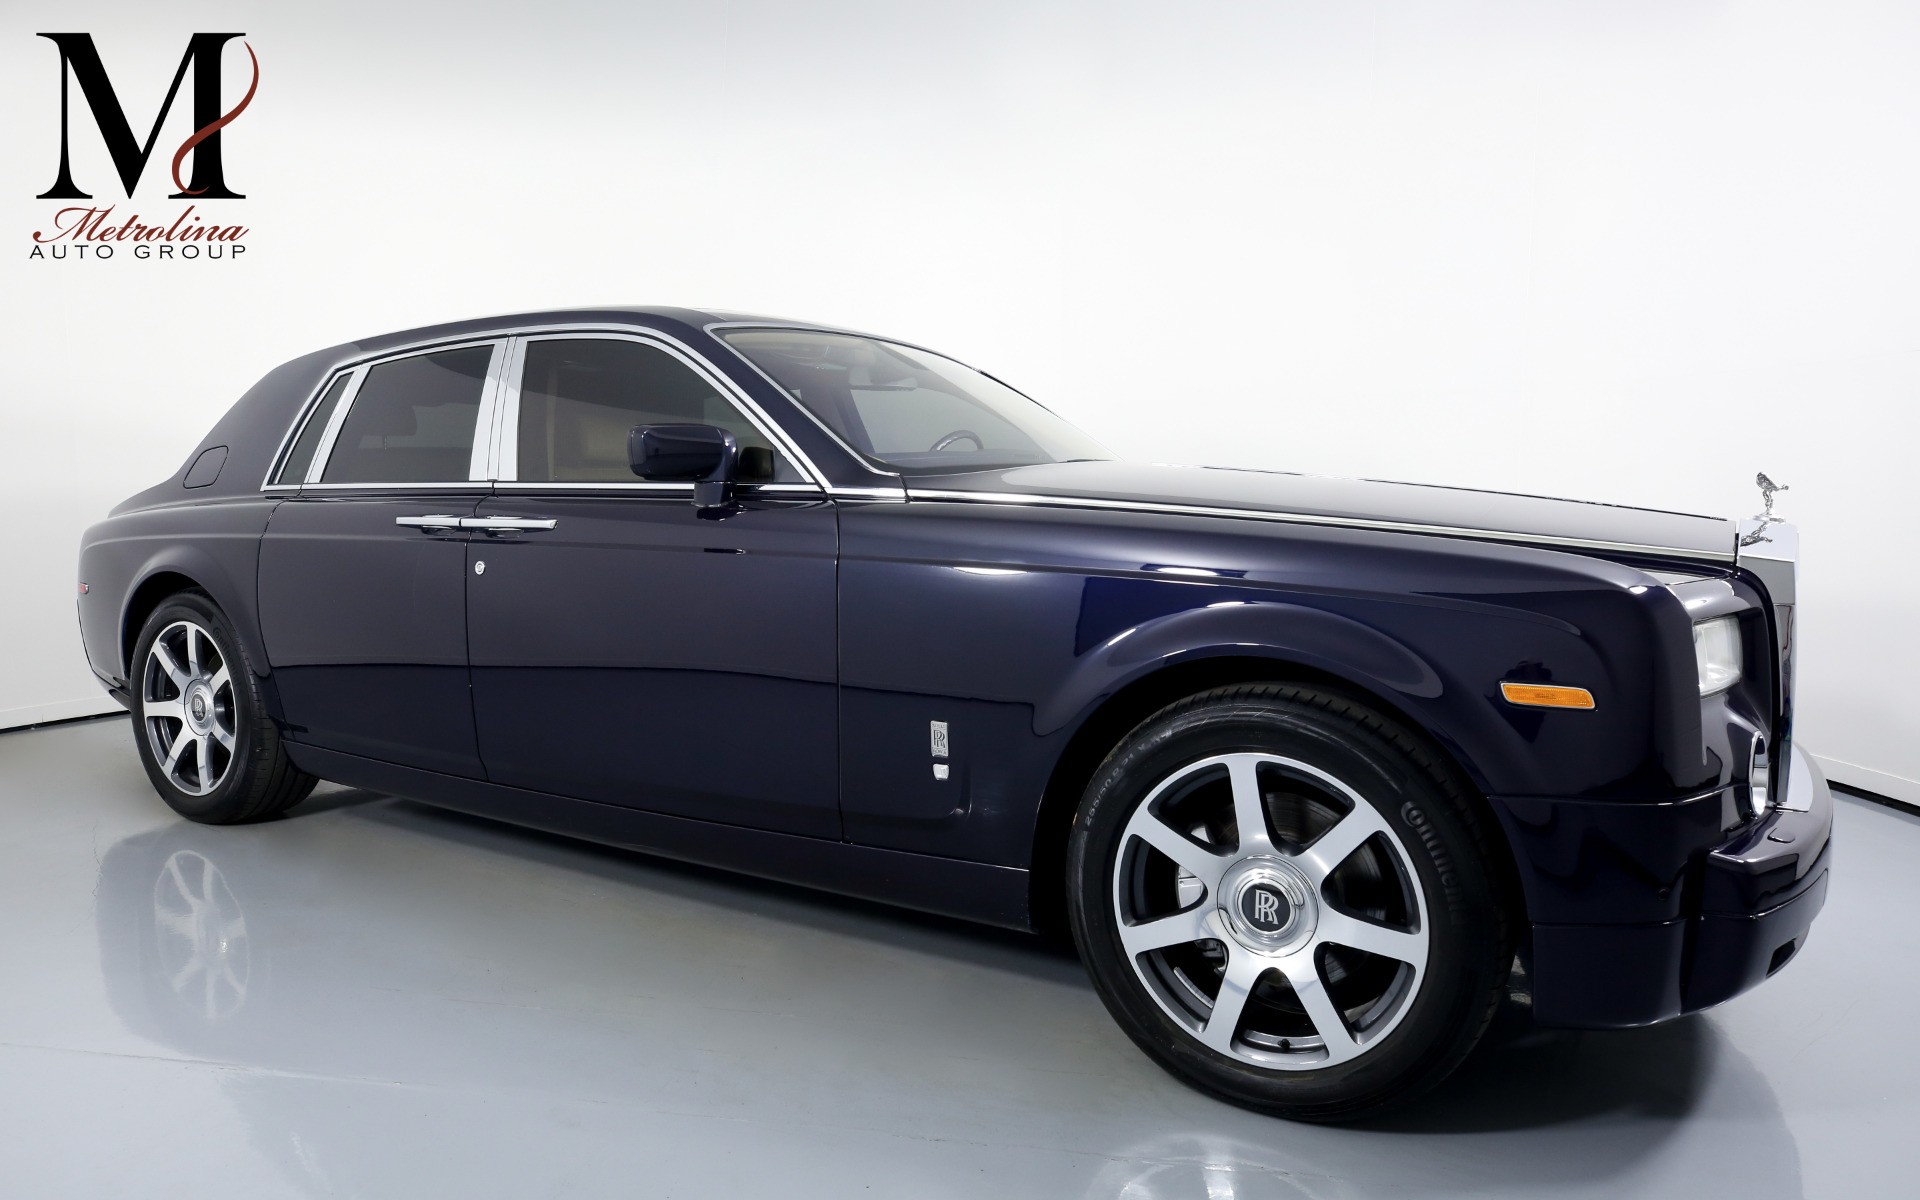 Used 2005 Rolls-Royce Phantom for sale Sold at Metrolina Auto Group in Charlotte NC 28217 - 1